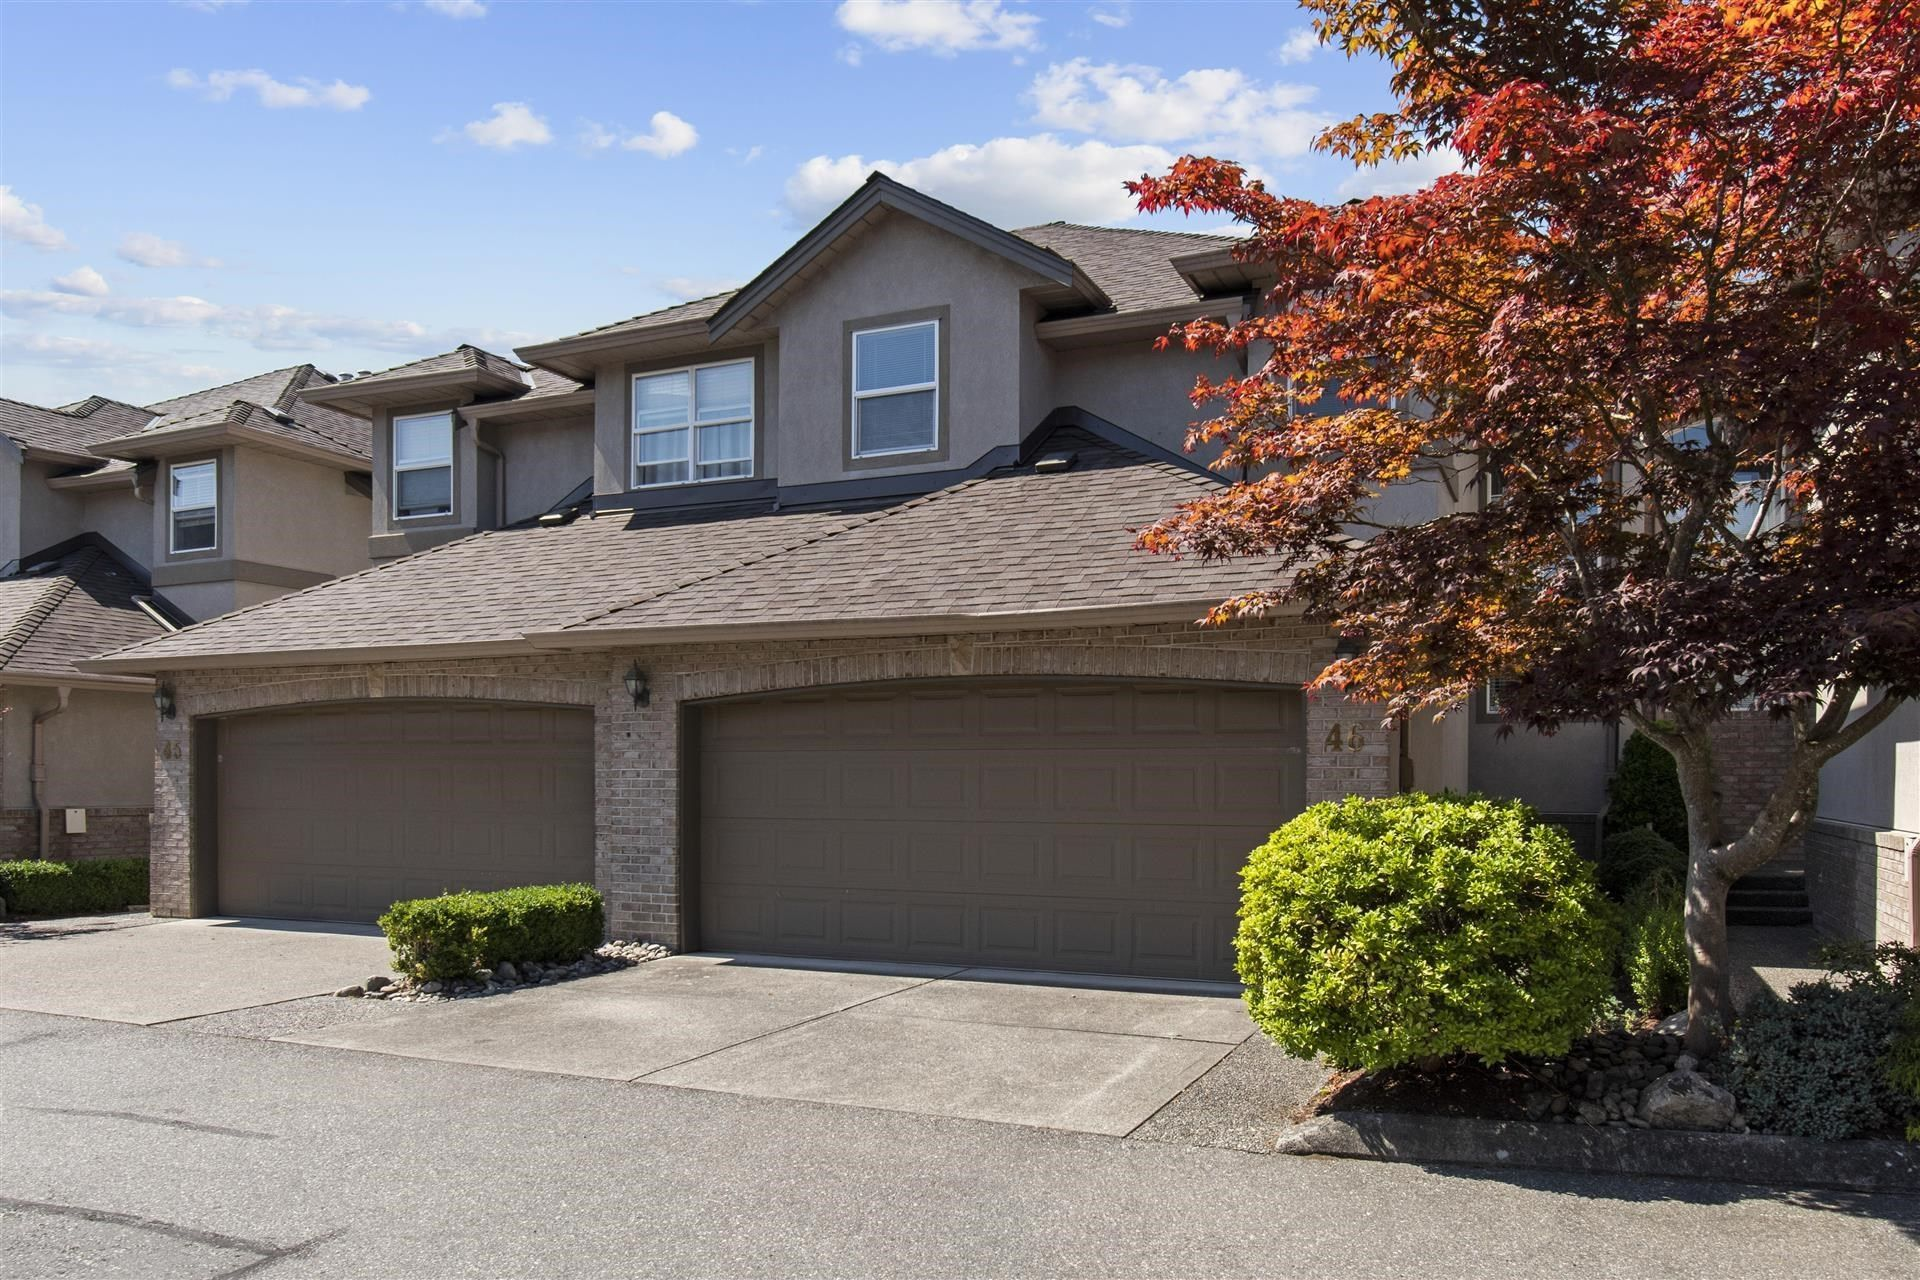 """Main Photo: 46 2525 YALE COURT Court in Abbotsford: Abbotsford East Townhouse for sale in """"YALE COURT"""" : MLS®# R2609600"""